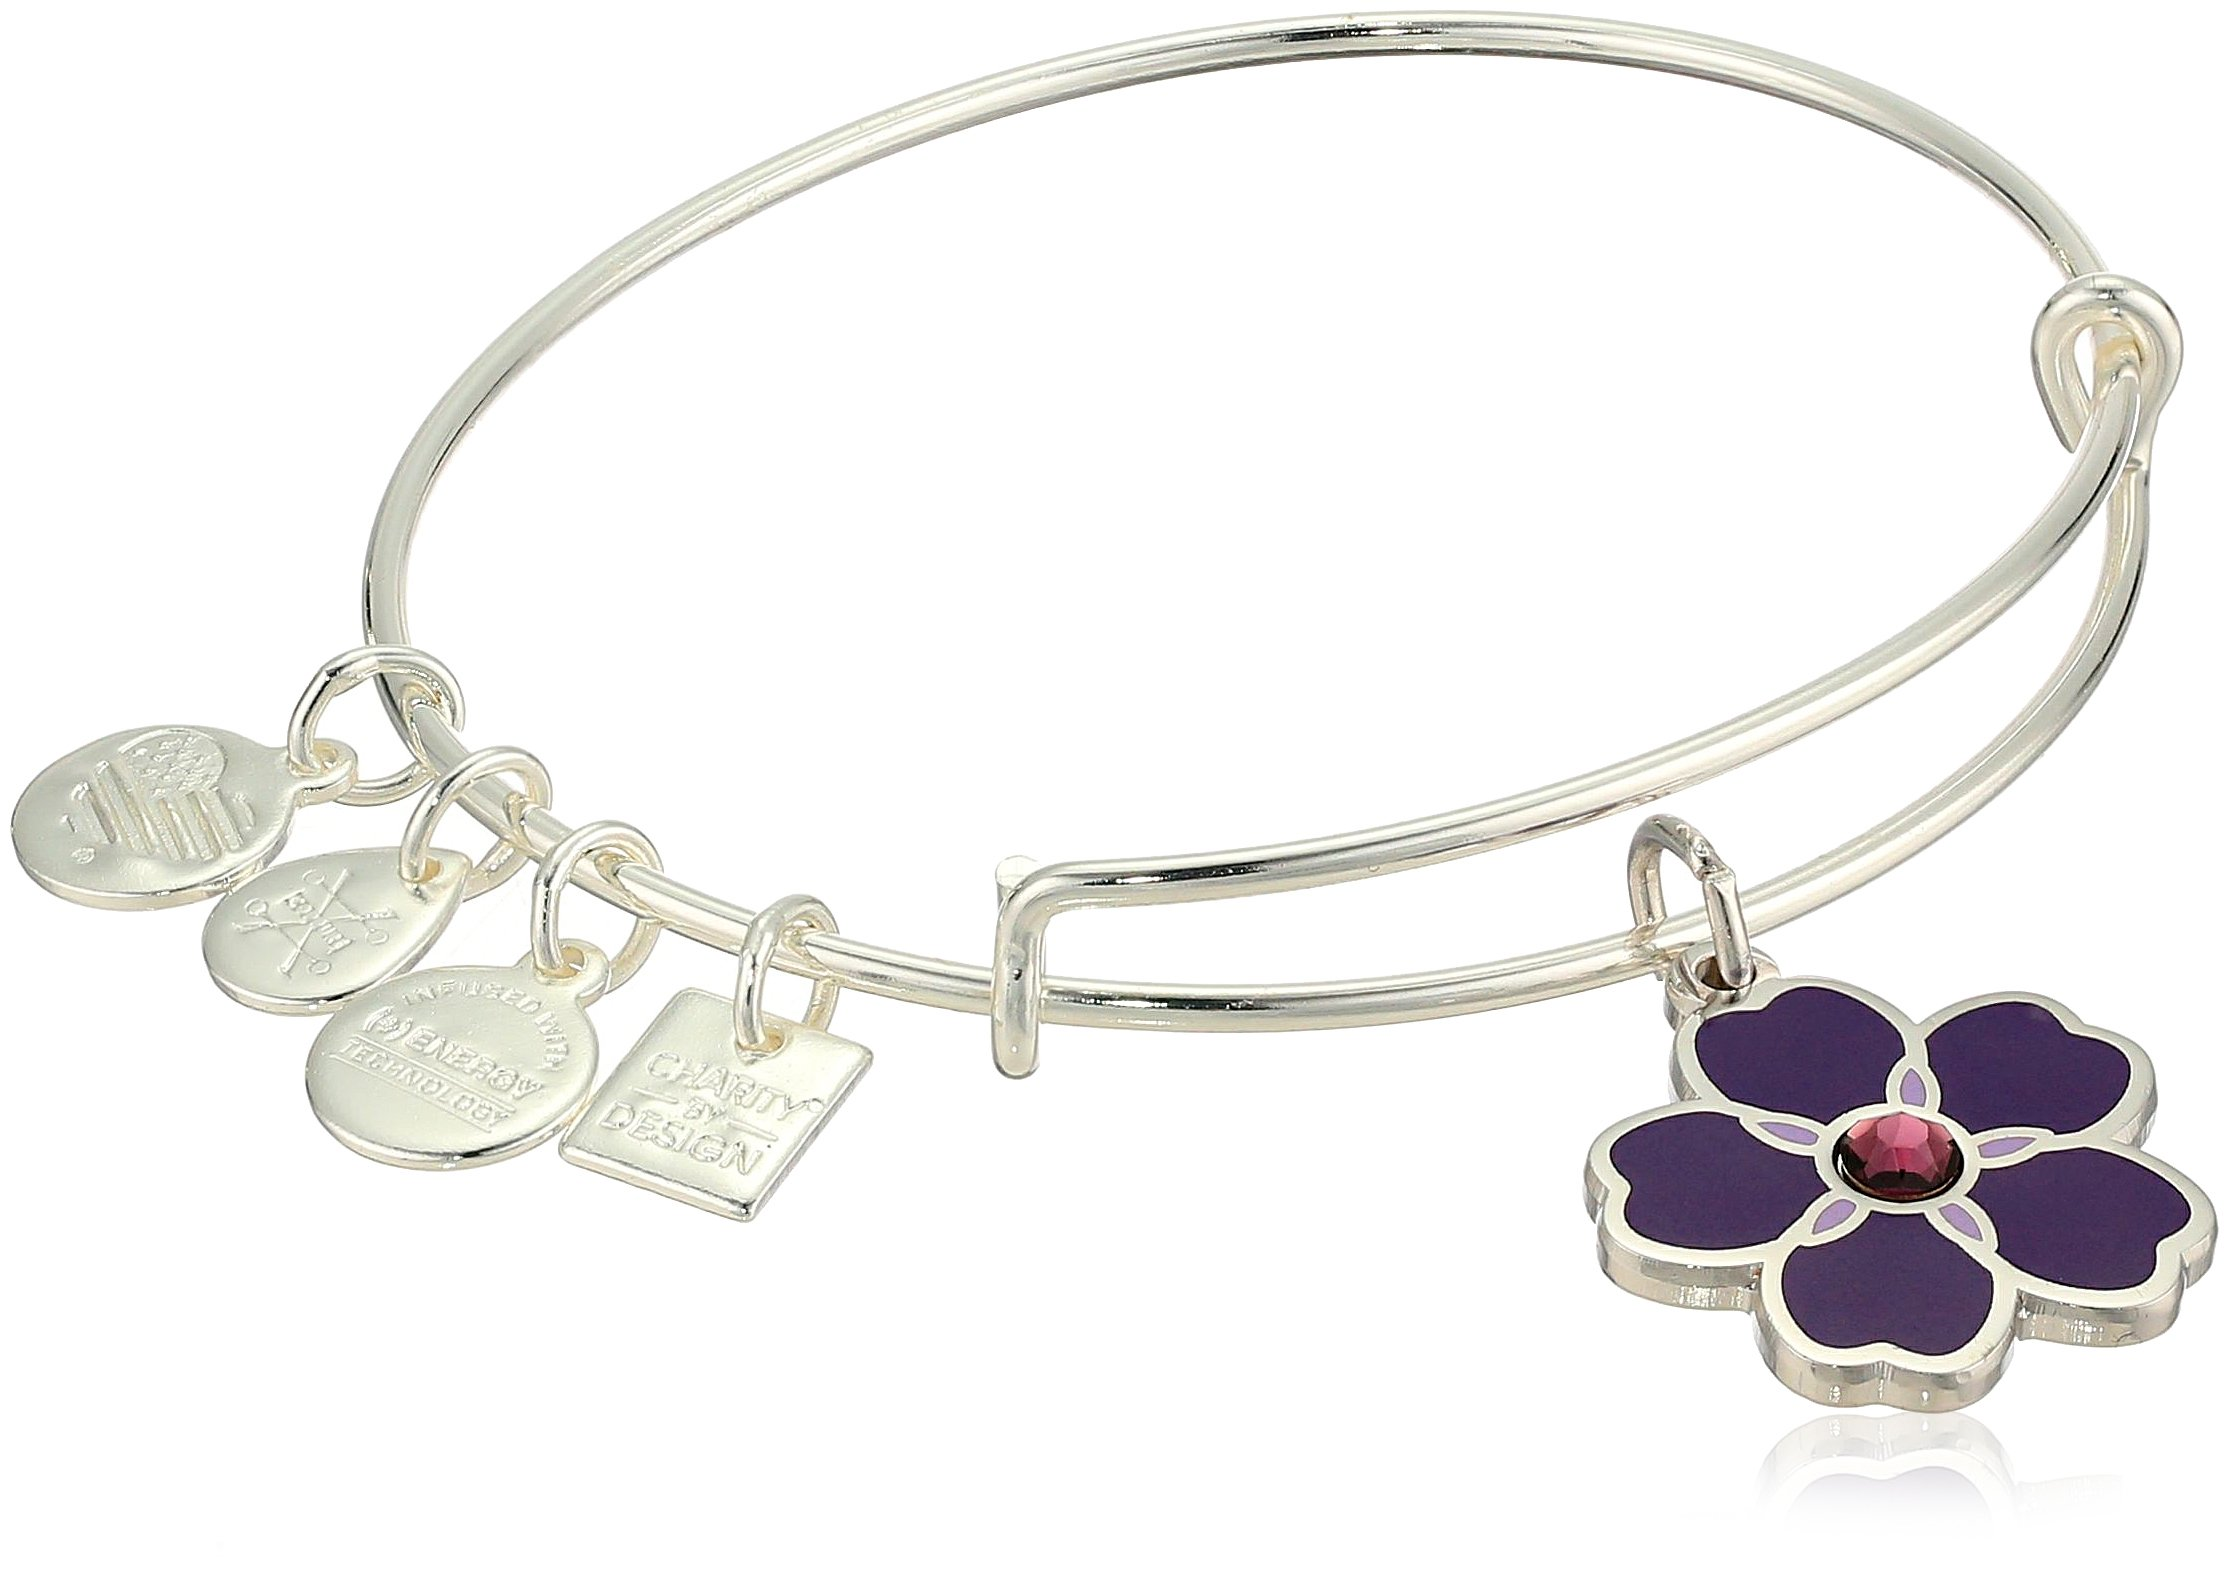 Alex and Ani Women's Charity by Design, Forget Me Not Charm Bangle Bracelet, Shiny Silver, Expandable